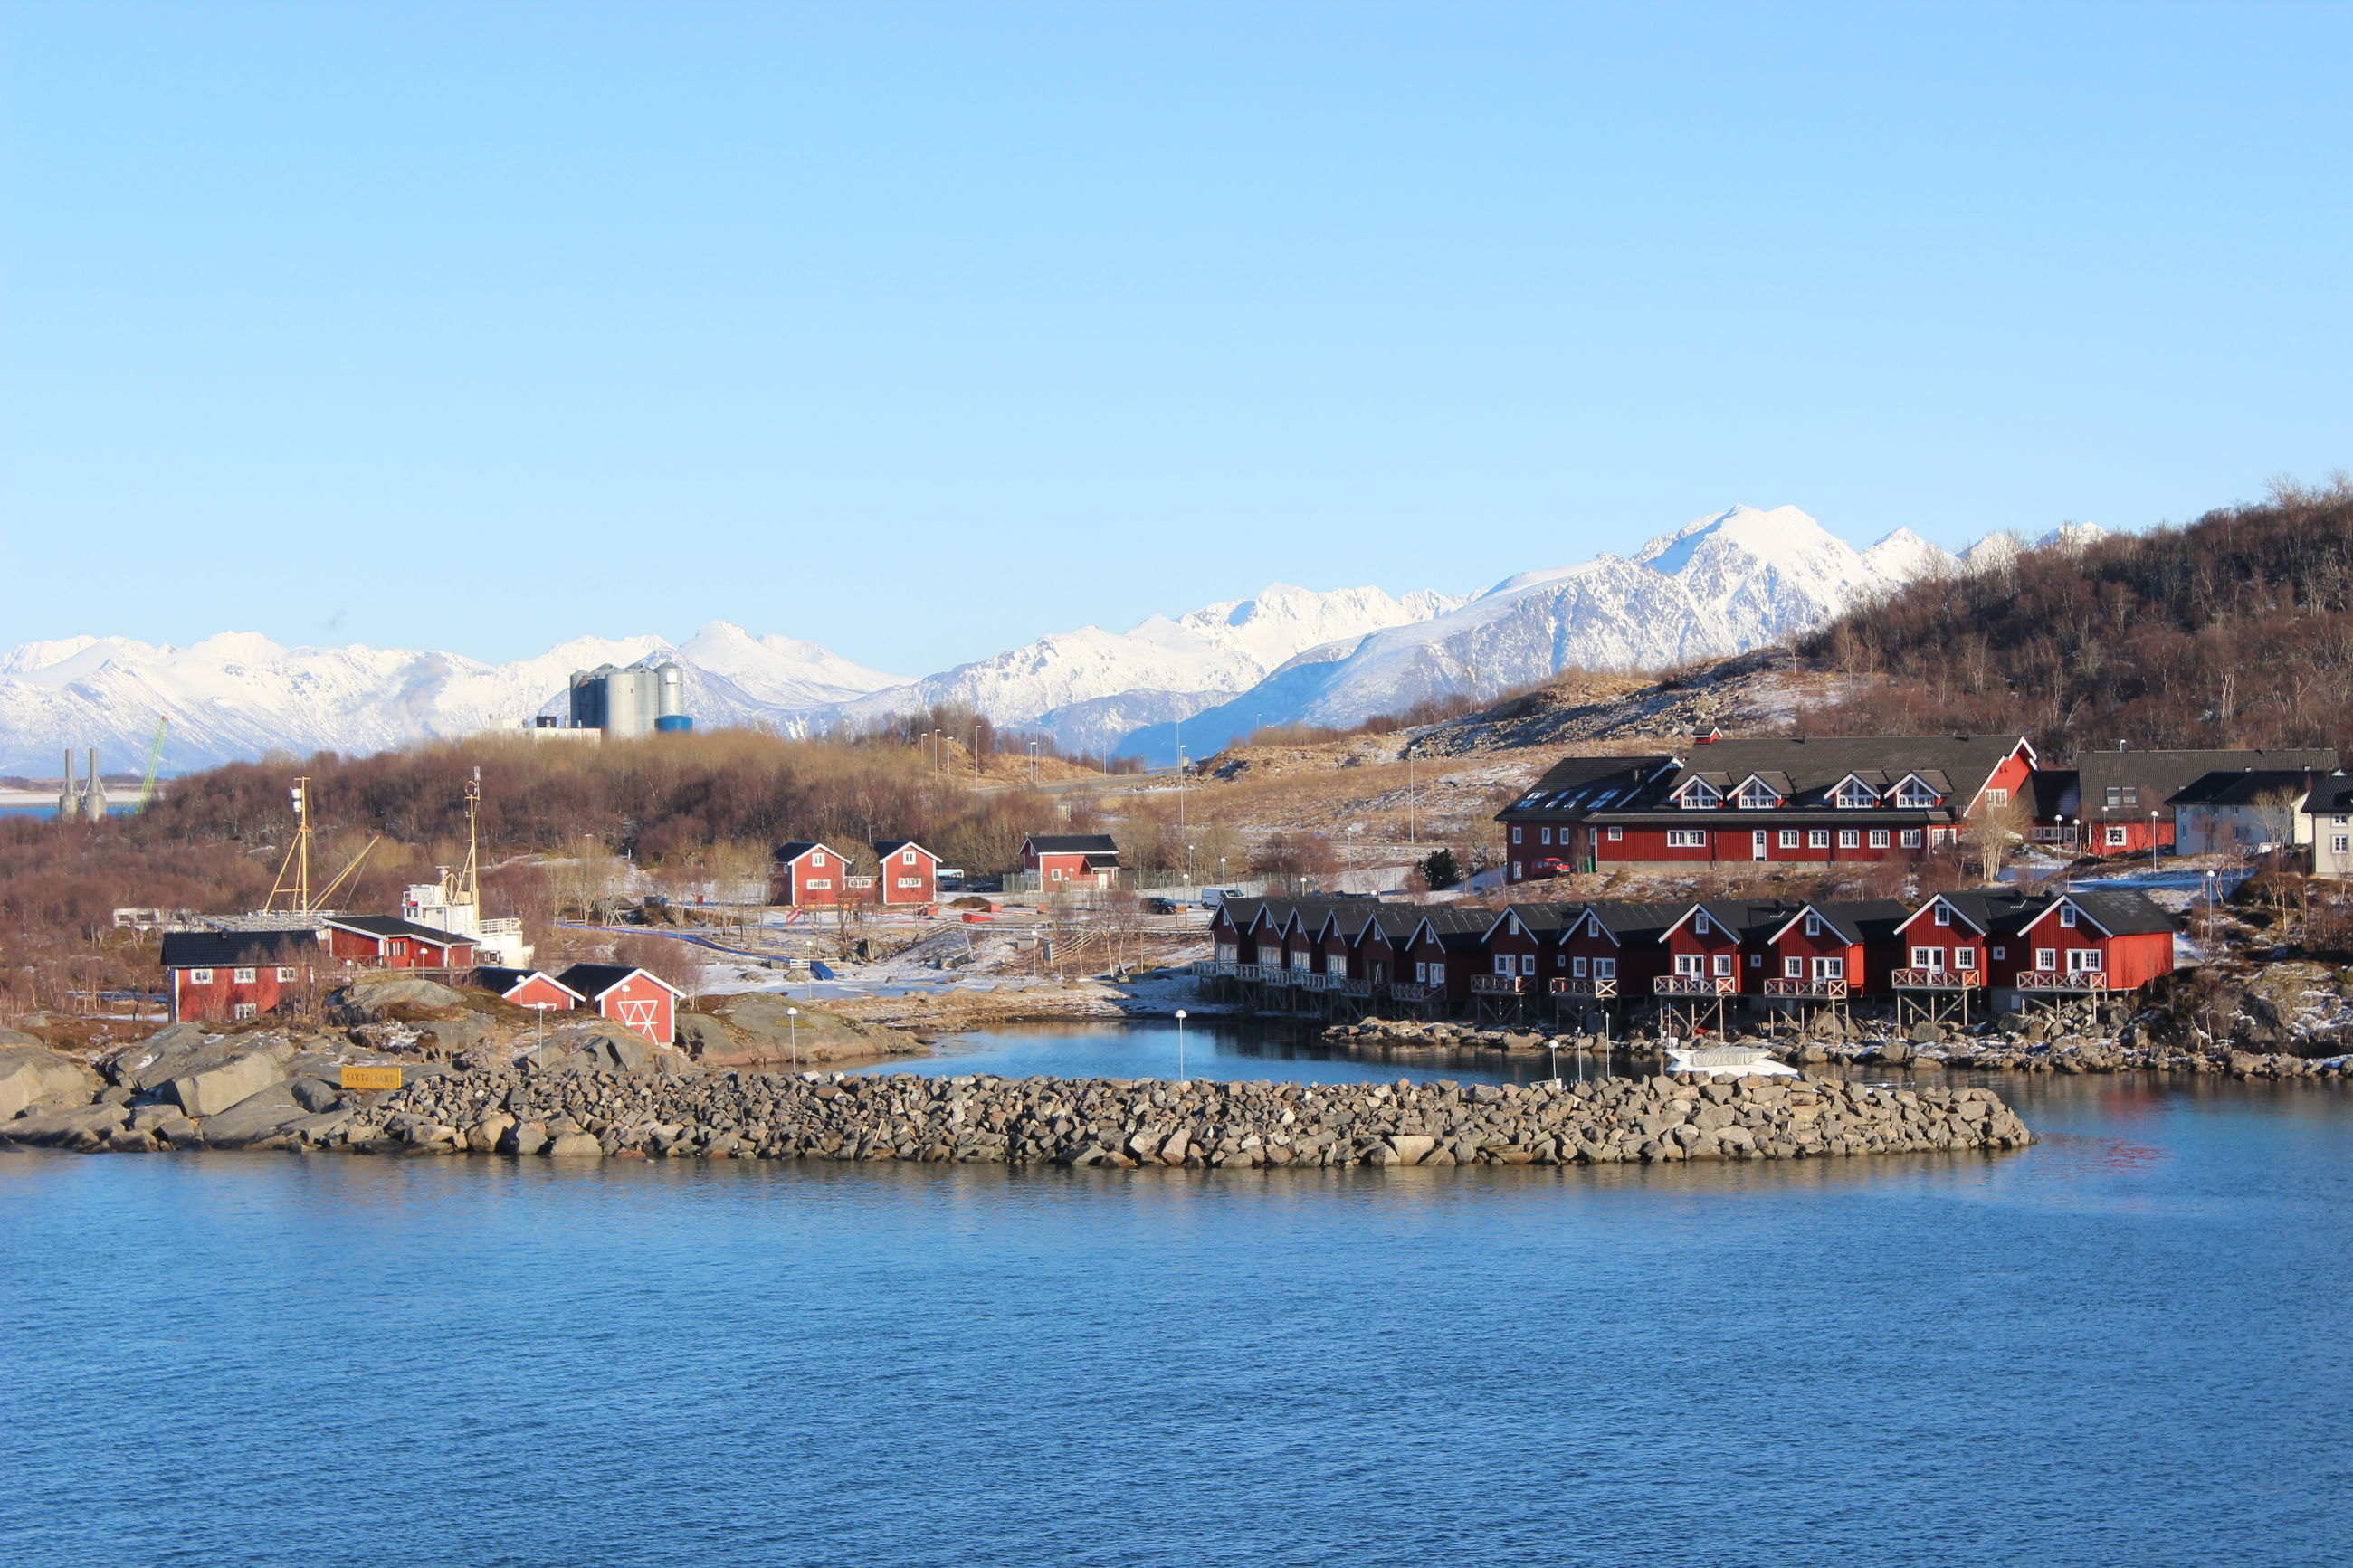 PANORAMIC SHOT OF TOWN BY SEA AGAINST CLEAR SKY